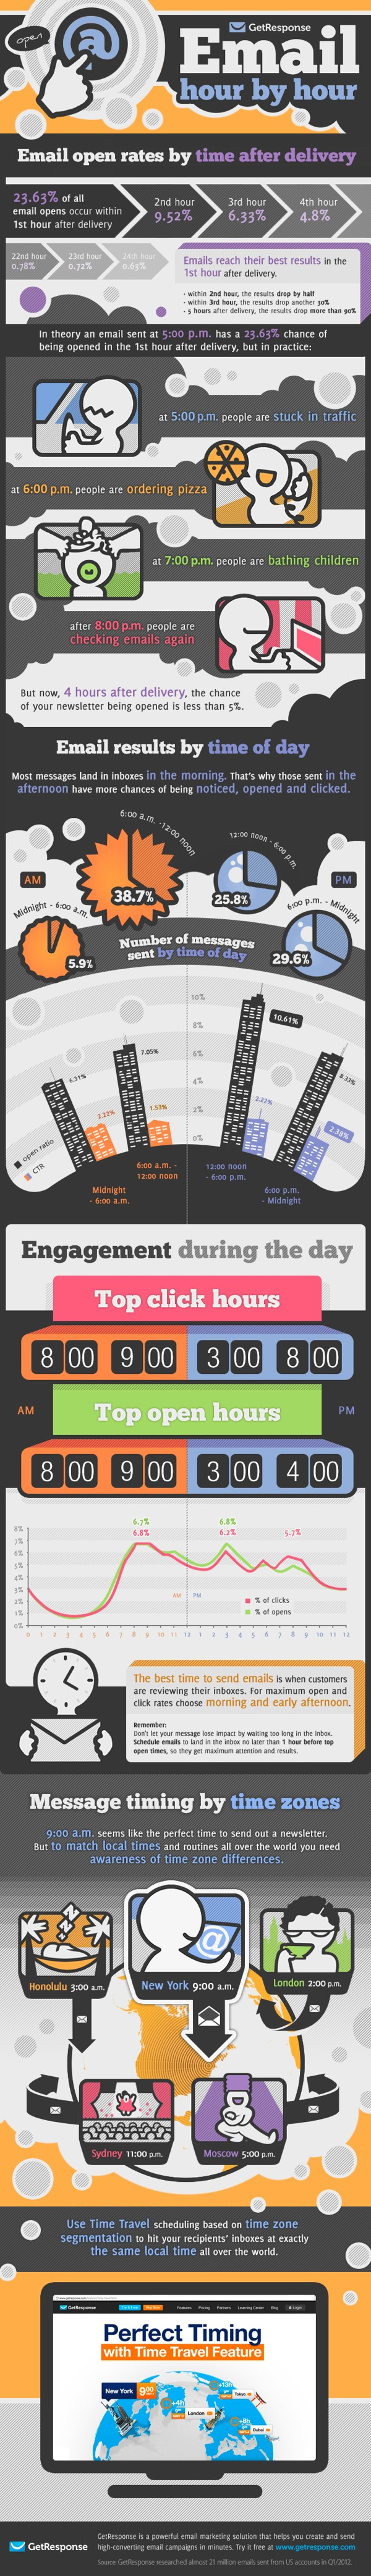 Best-Time-To-Email-Infographic